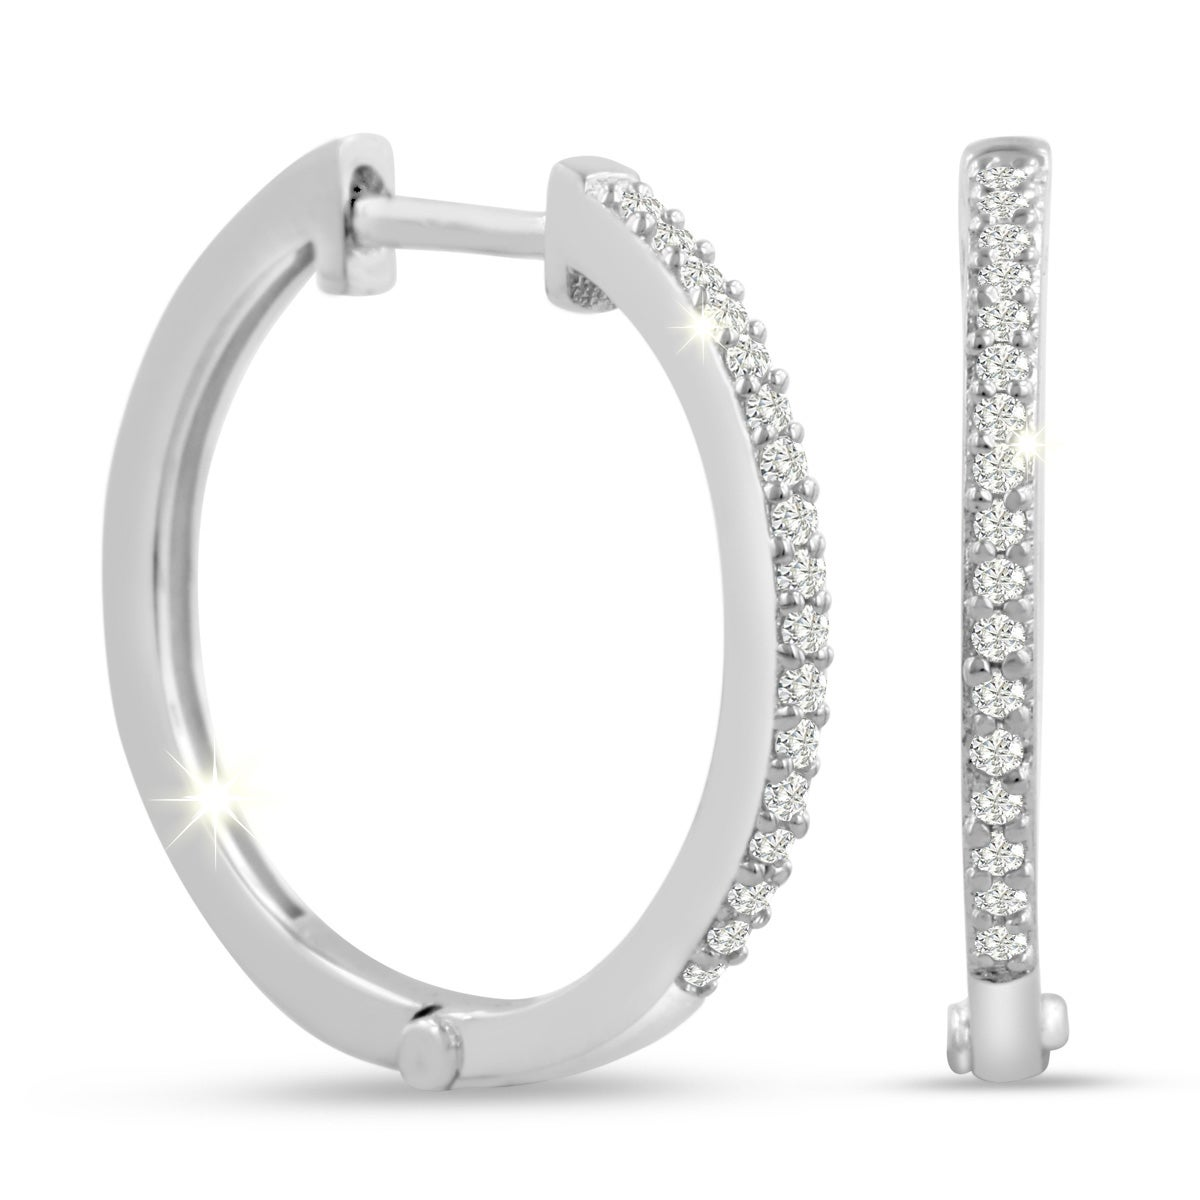 hoop snap back watches today jewelry in backs hidden overstock shipping earrings silver product diamond free sterling